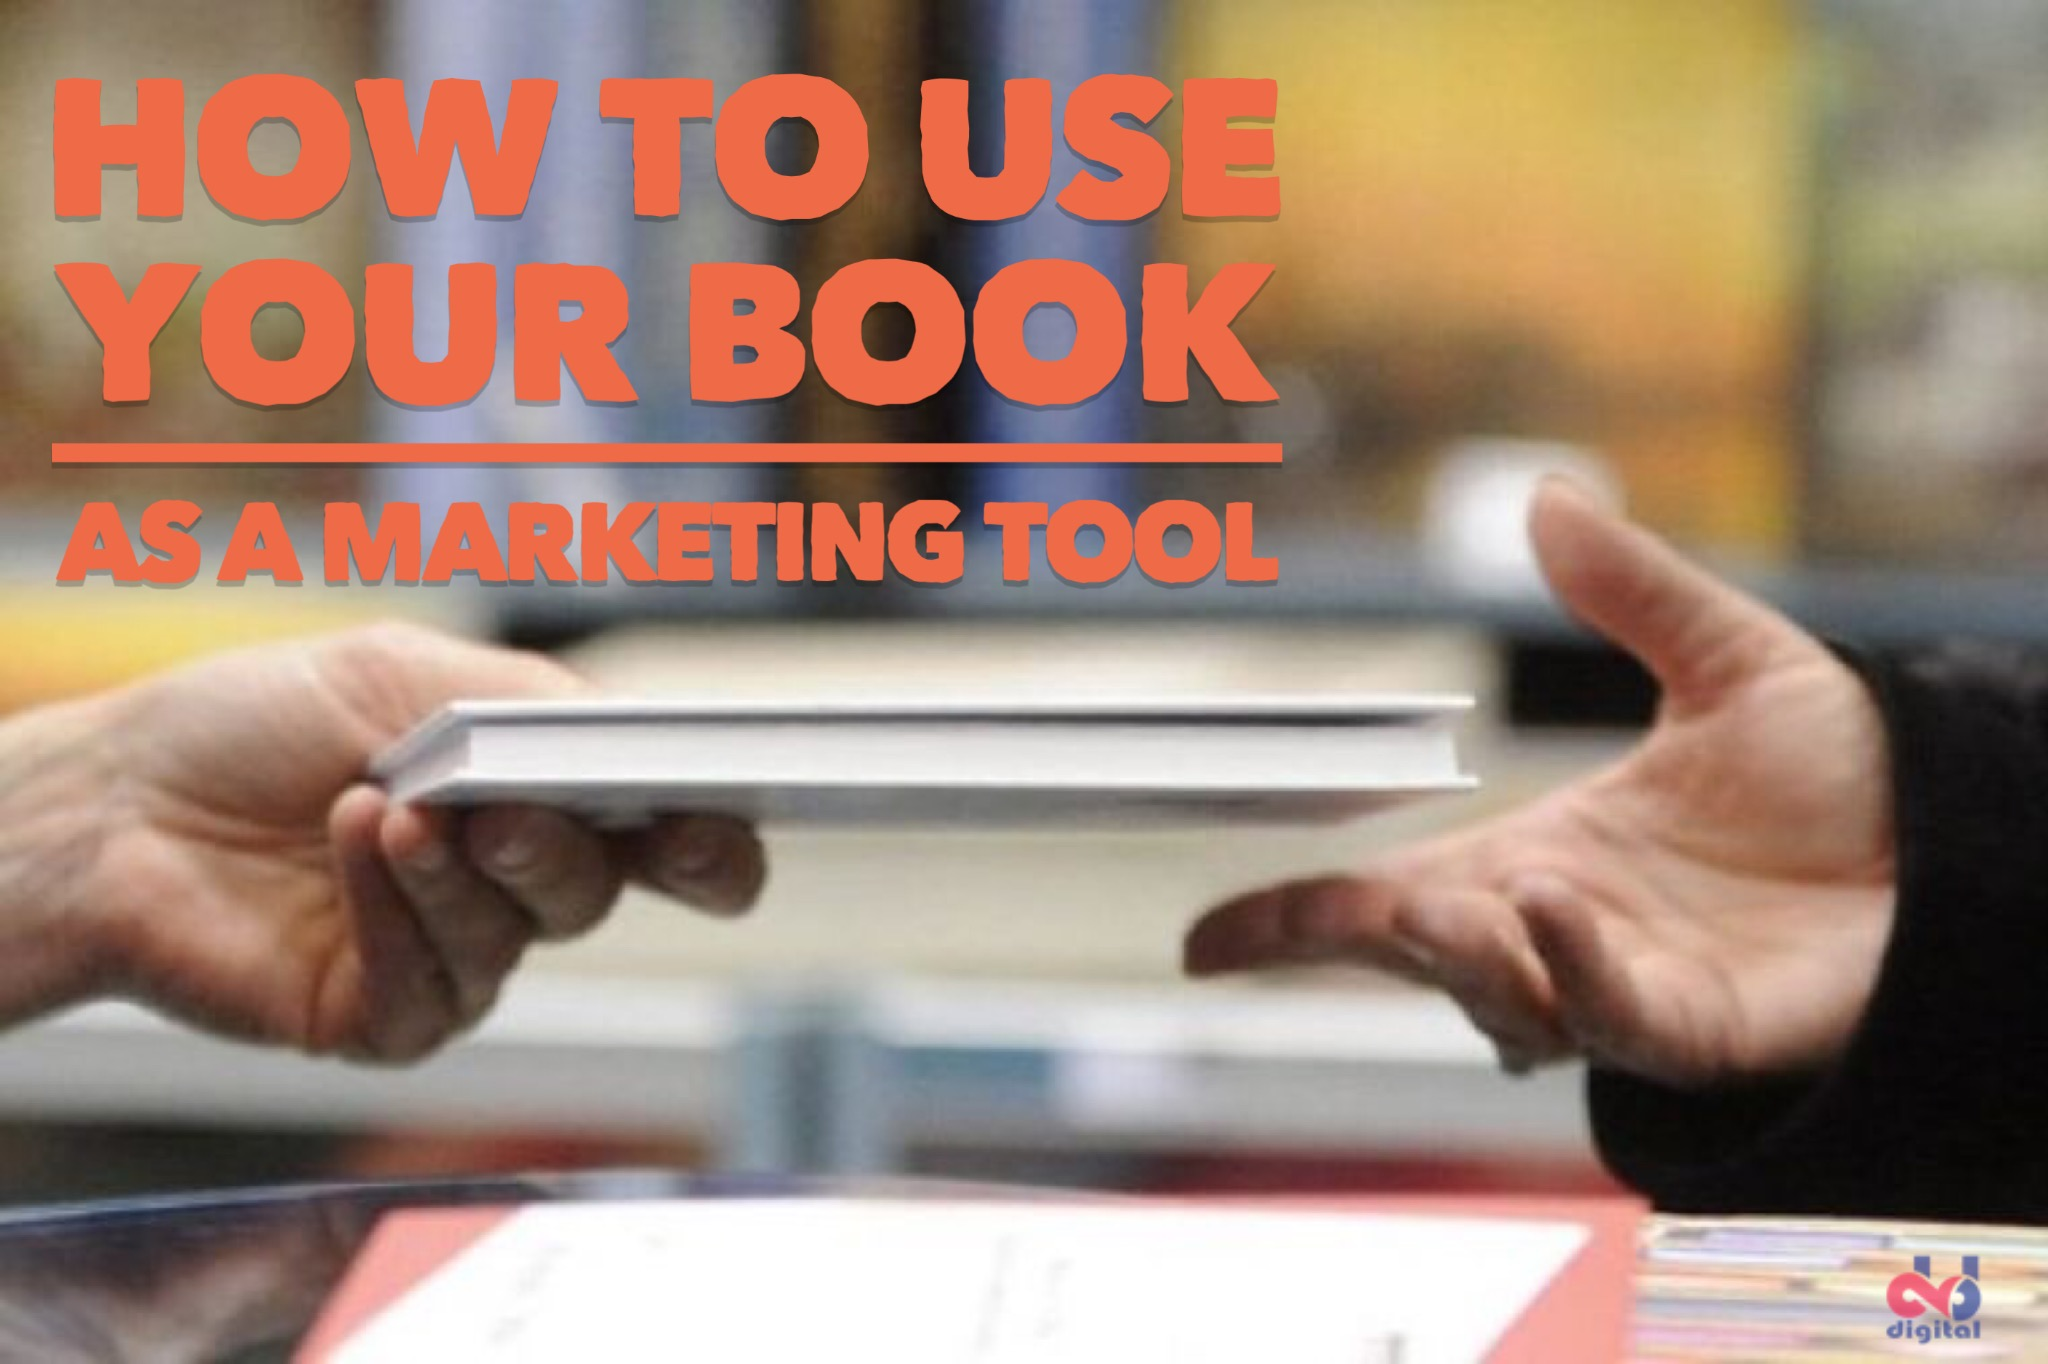 How To Use Your Book As a Marketing Tool to Grow Your Business